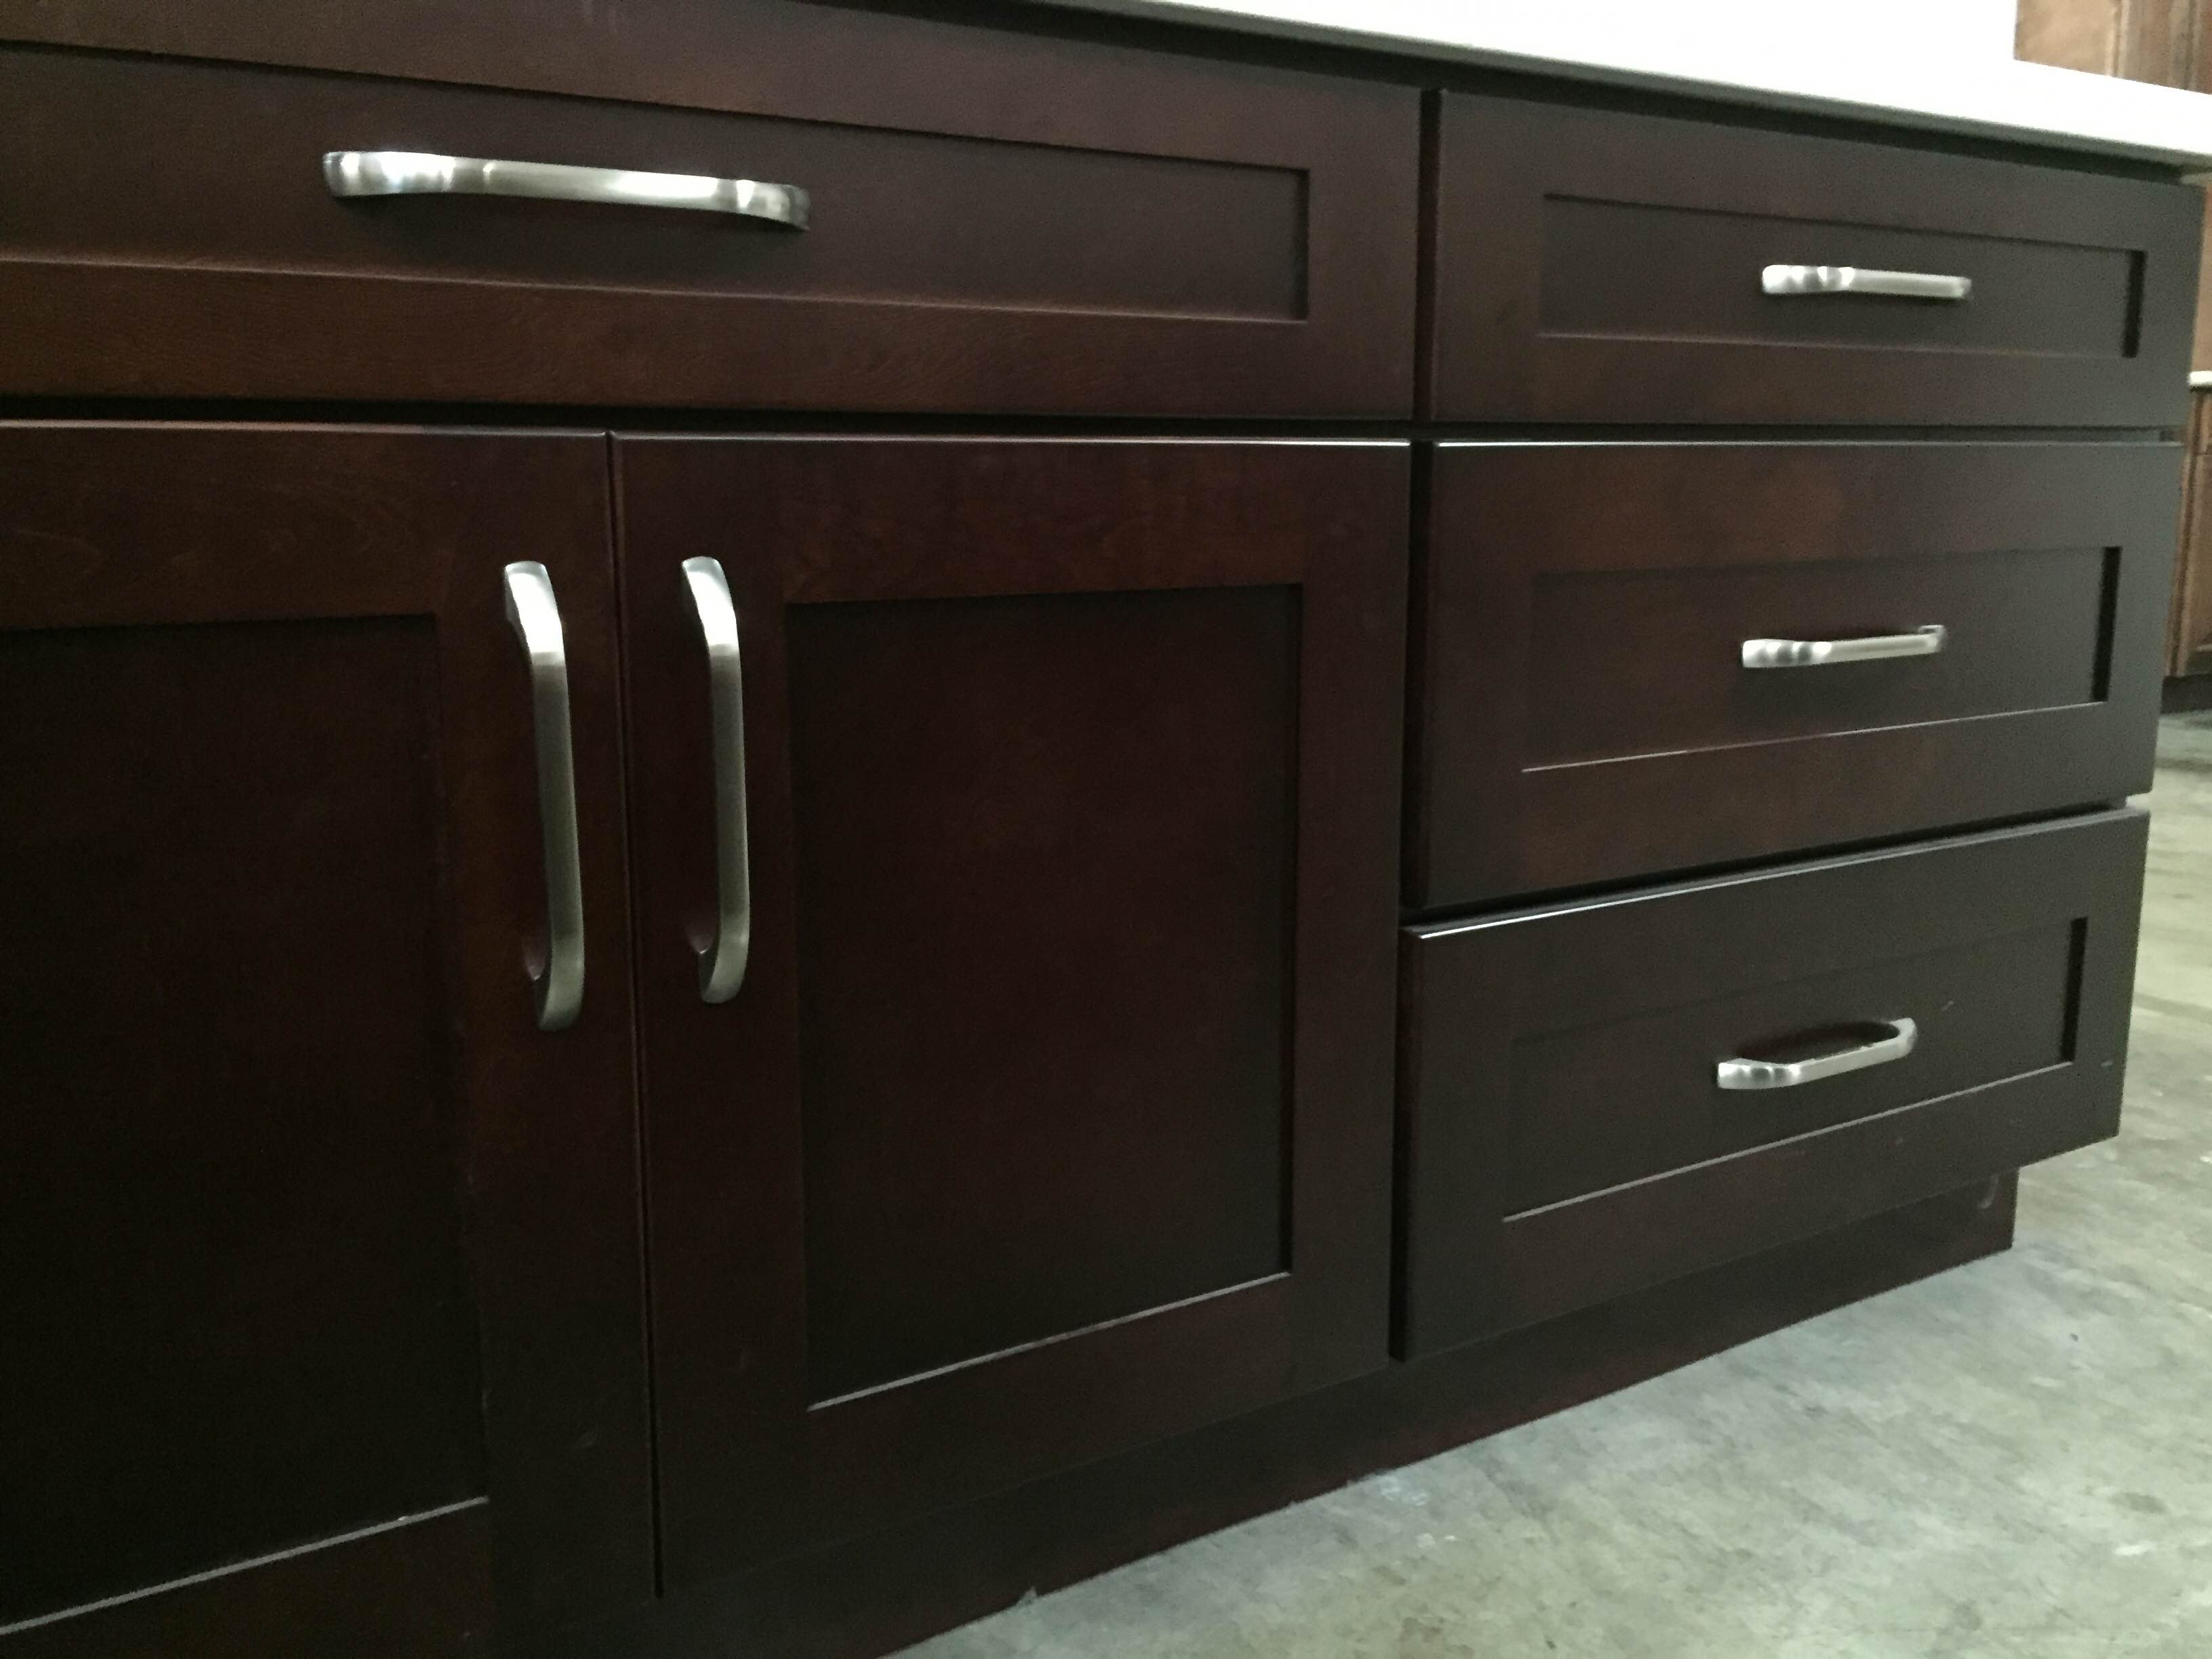 Black Cherry Colored Maple Shaker Kitchen Cabinets Photo Album